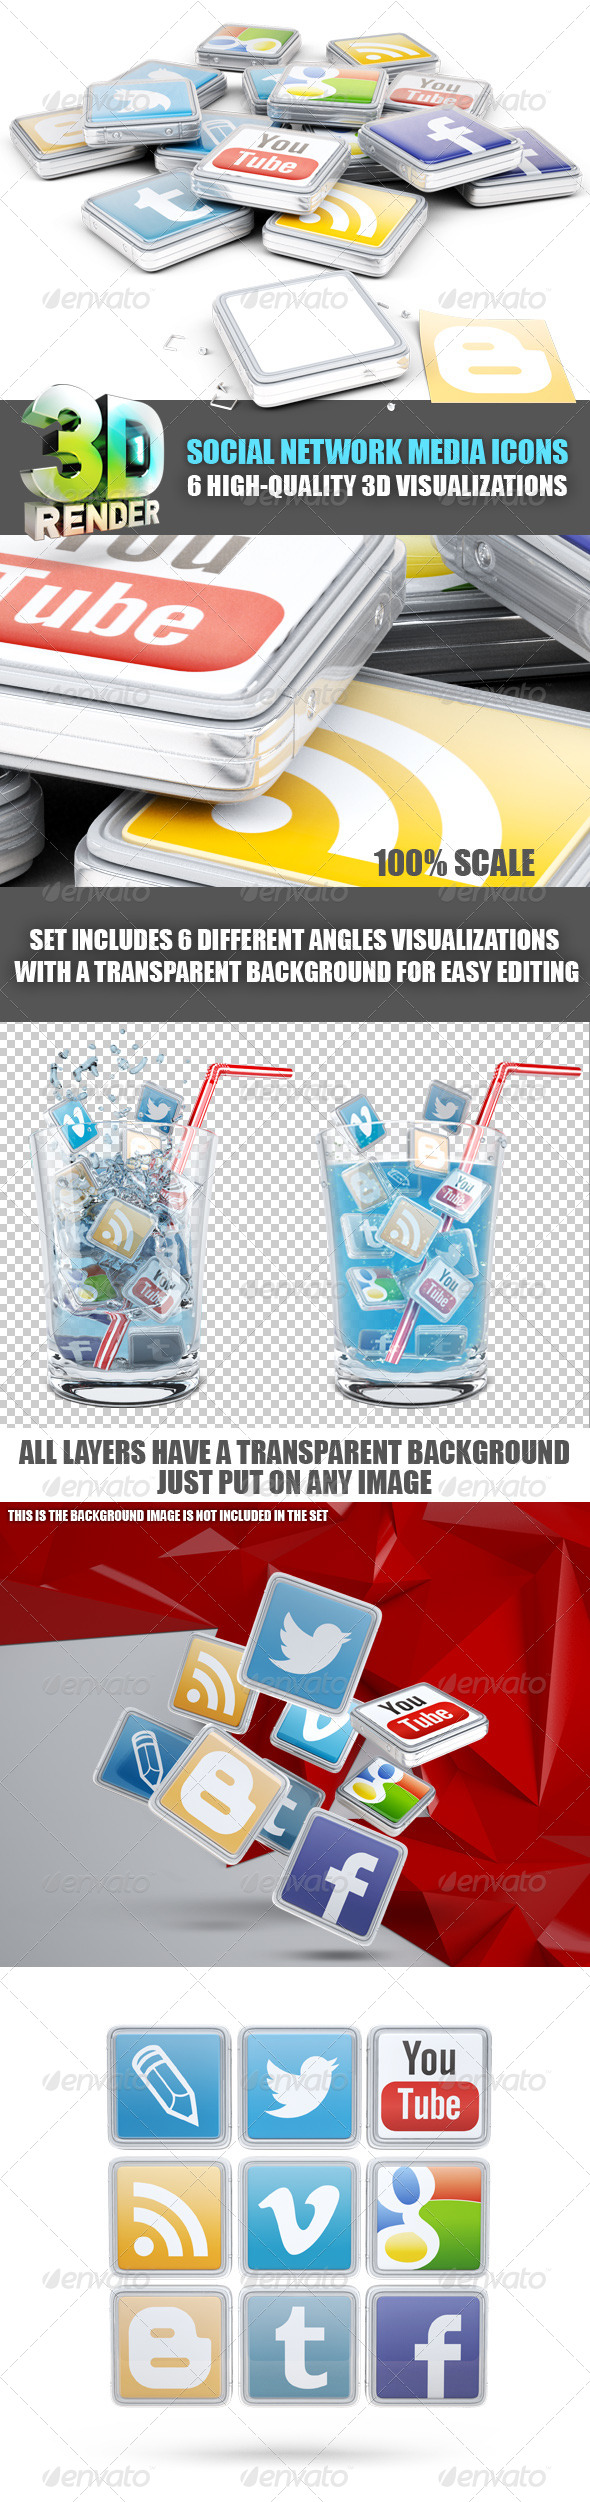 GraphicRiver Social Network Media 3D Icons 5955164